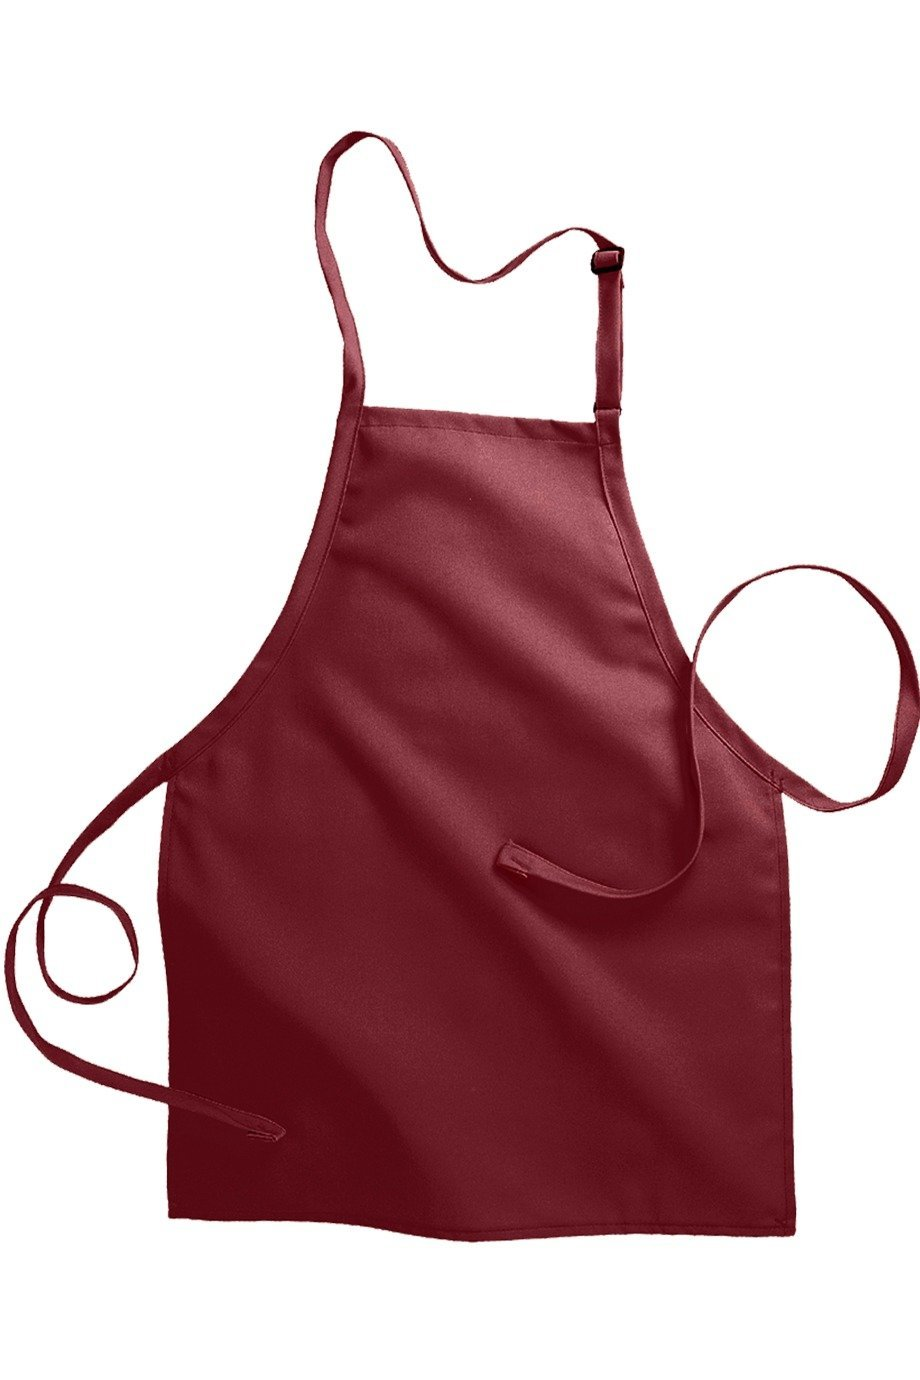 Wine Bib Adjustable Apron (No Pockets)